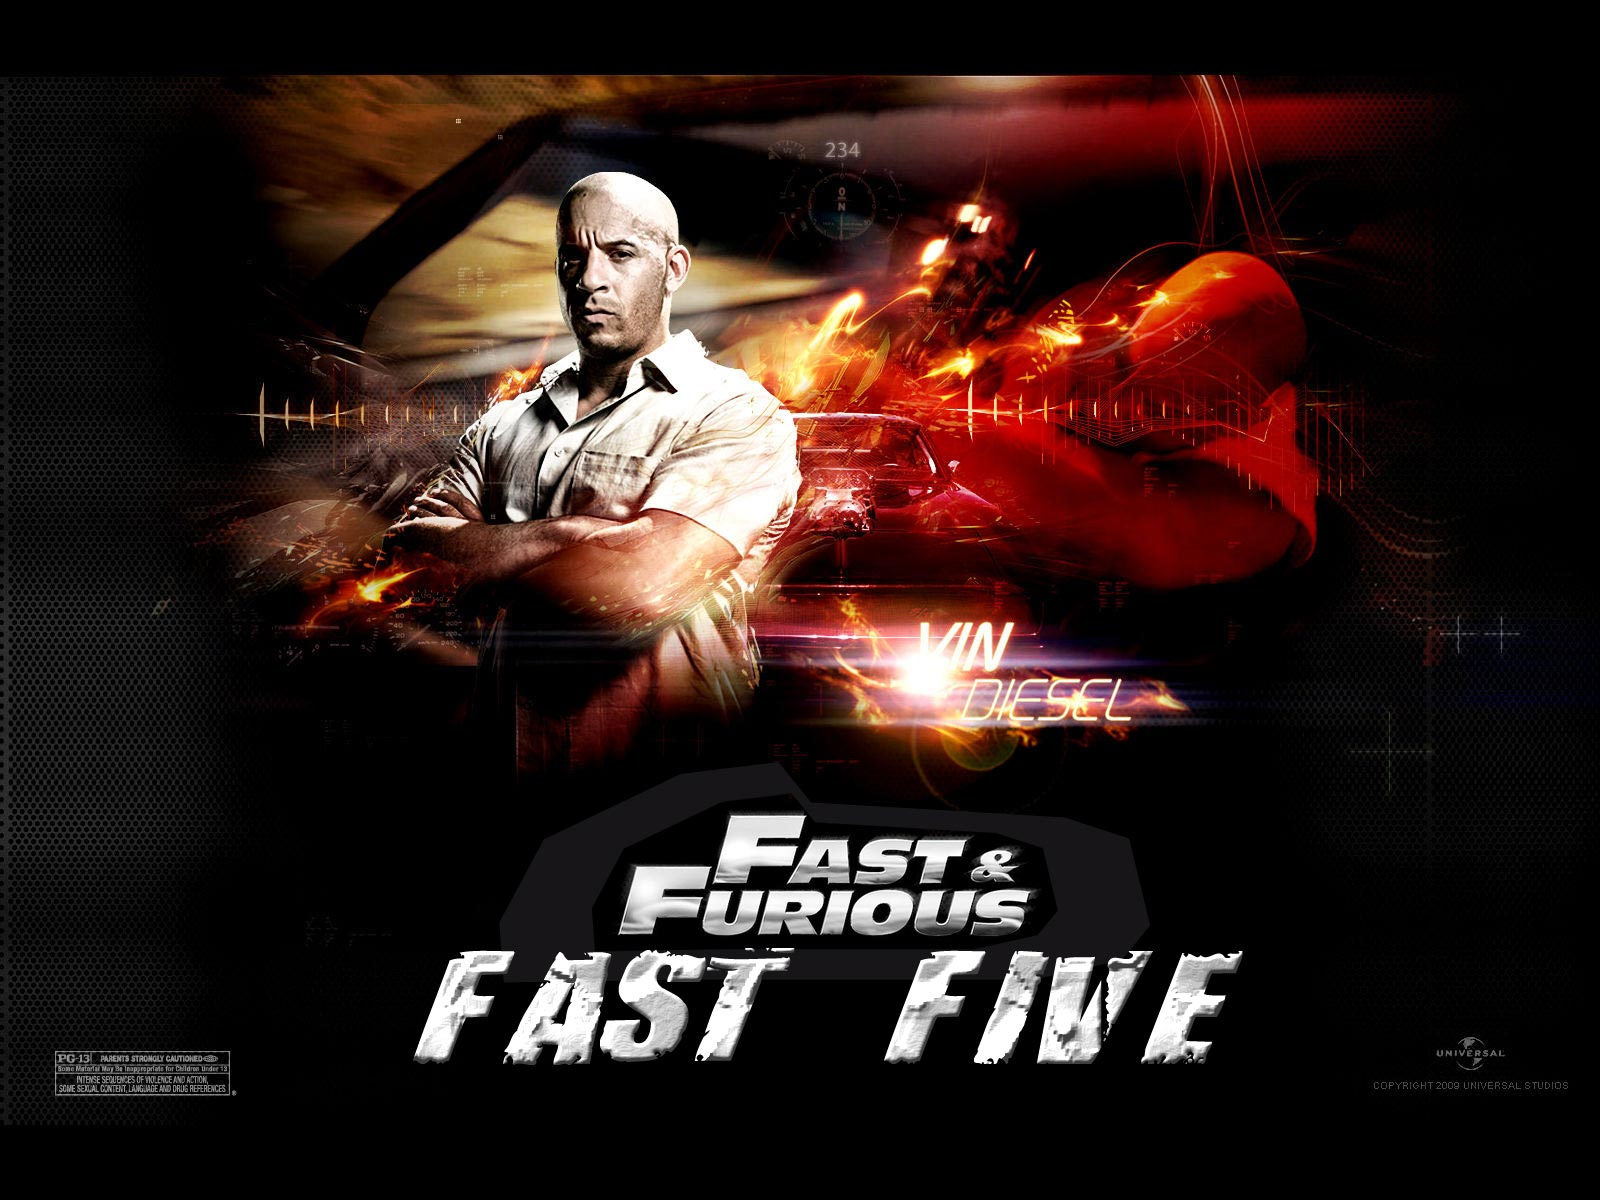 fast furious 5 confirmed titled plot details revealed filmofilia. Black Bedroom Furniture Sets. Home Design Ideas